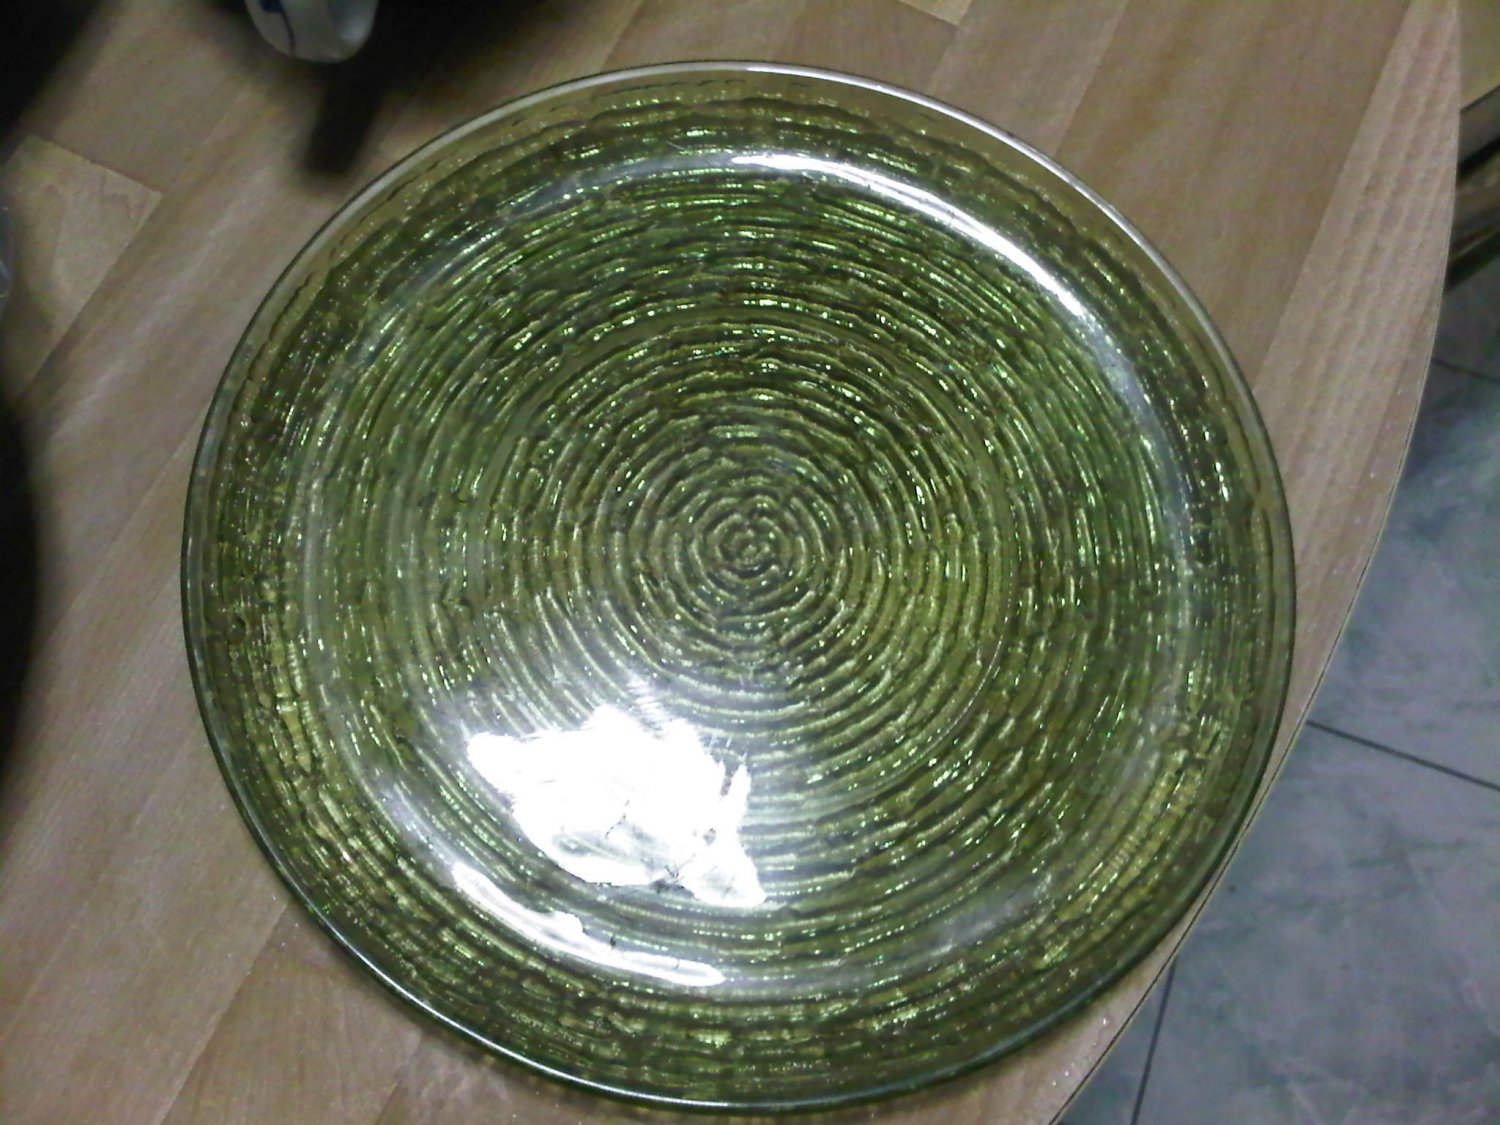 lot set 4 GREEN PLATE glass vintage cup glasshome 1950s DECORATIVE COLLECTIBLE KITCHEN